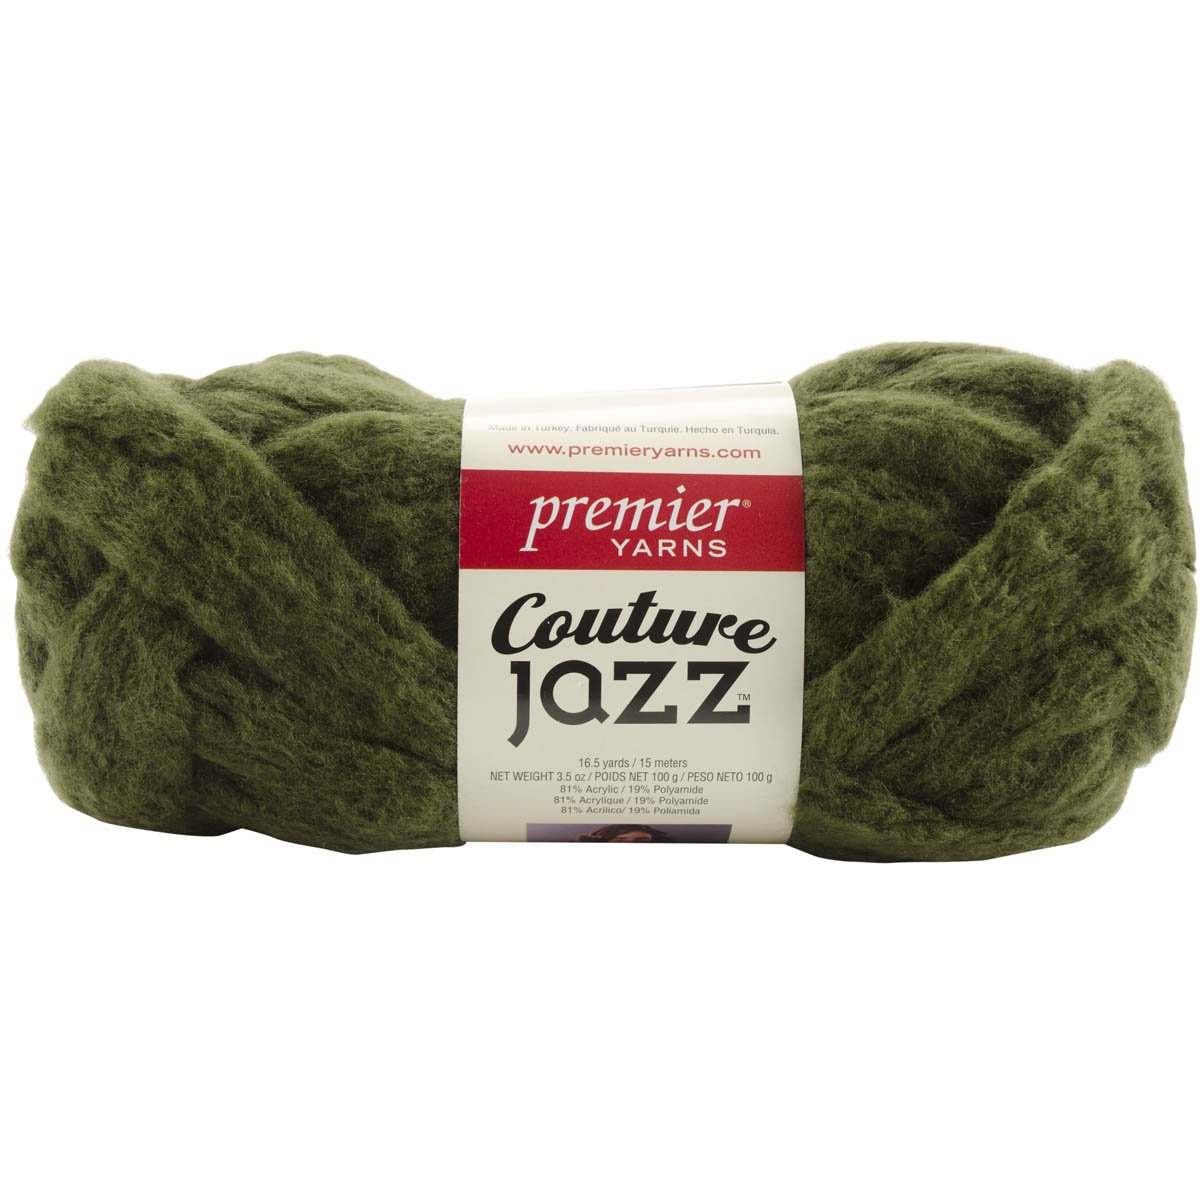 Premier Yarn Couture Jazz Yarn, Olive (Pack of 3)